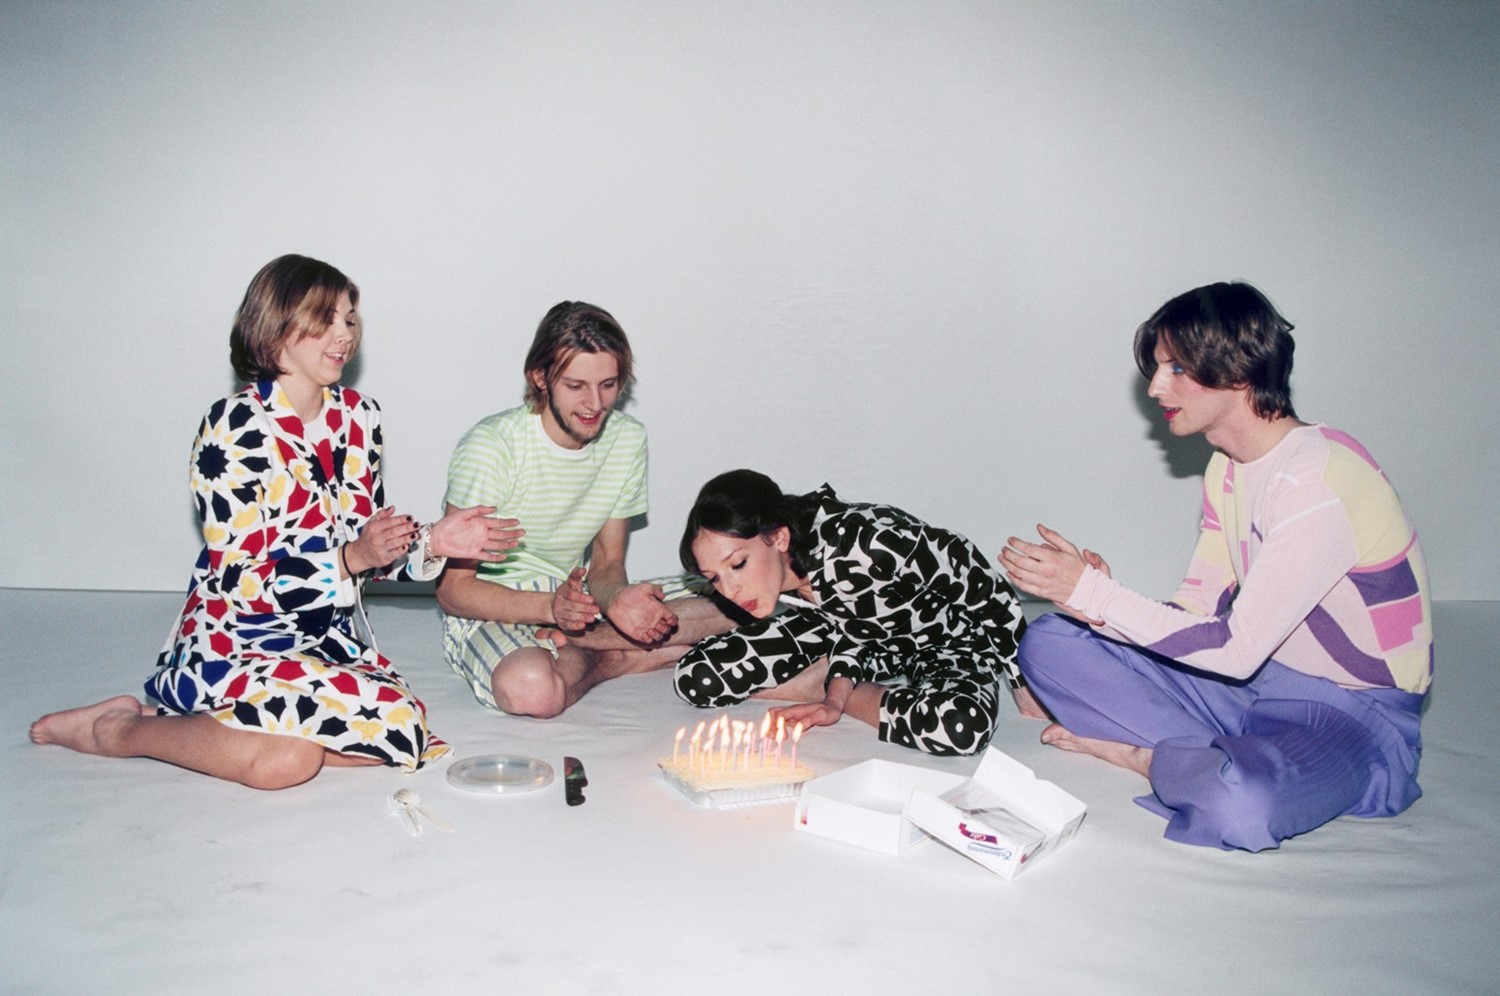 Birthday for Dazed & Confused, New York, 2001